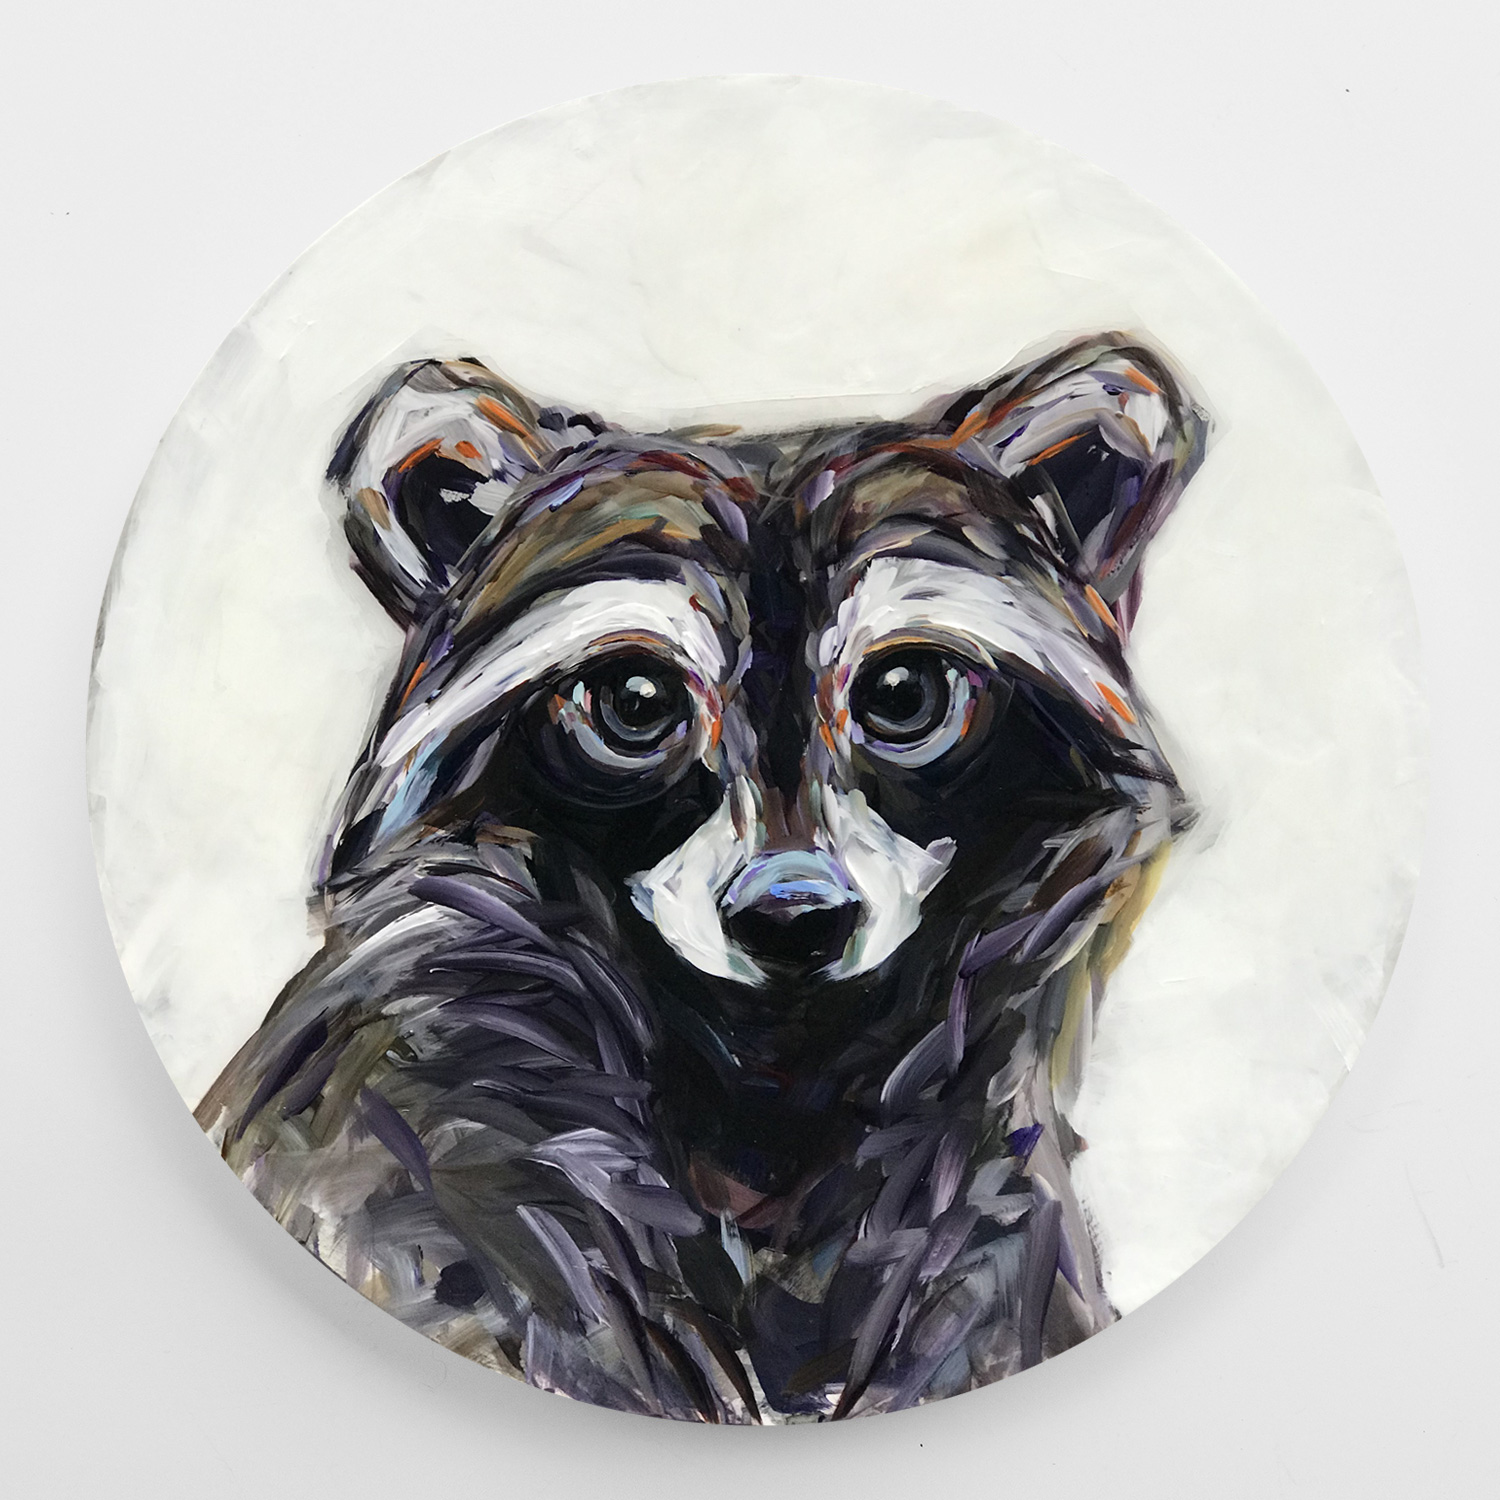 kandice keith art whimsical creatures racer racoon round 24